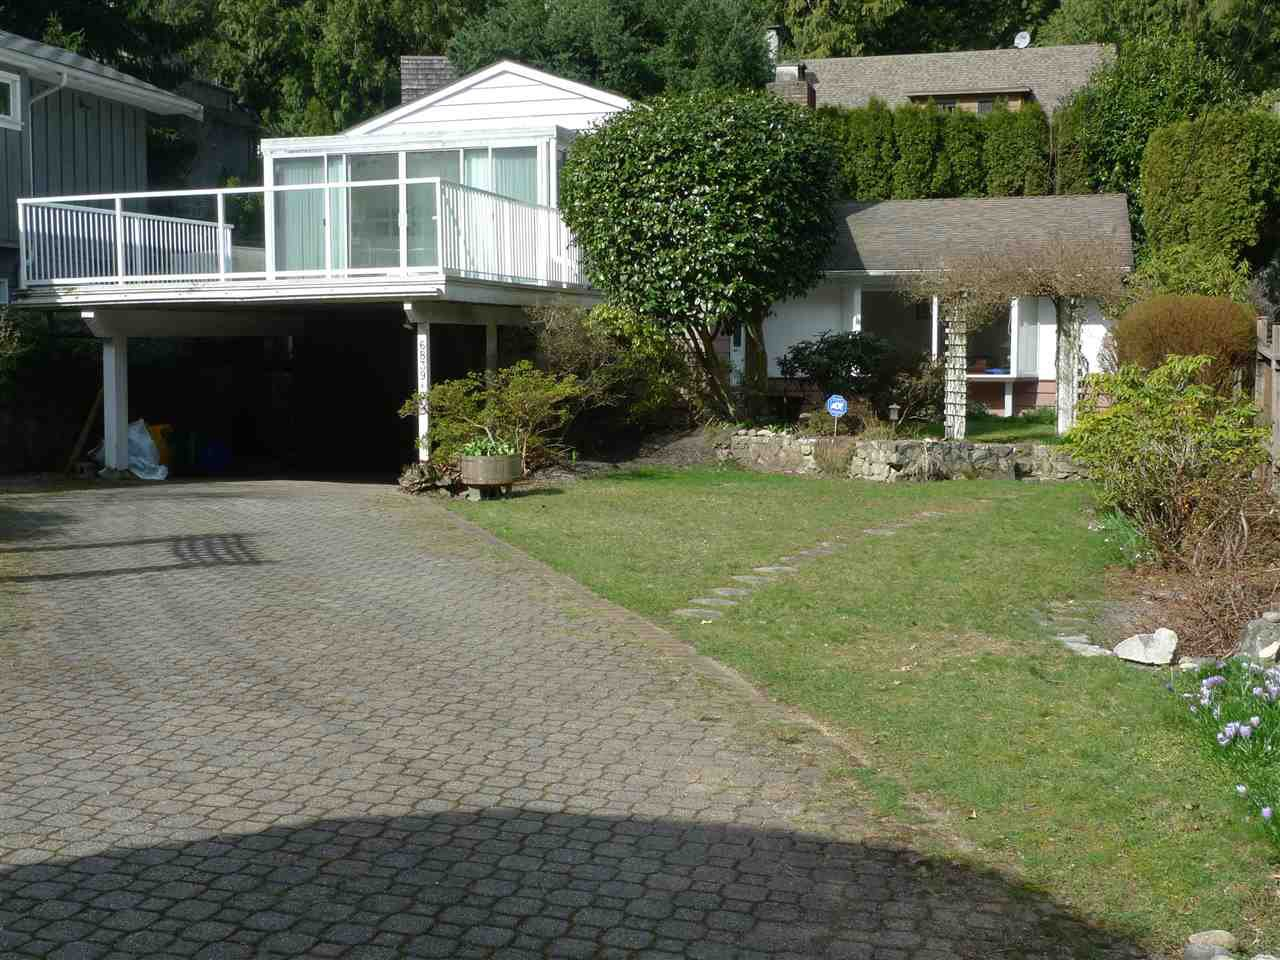 """Main Photo: 6839 COPPER COVE Road in West Vancouver: Whytecliff House for sale in """"WHYTECLIFF"""" : MLS®# R2246156"""